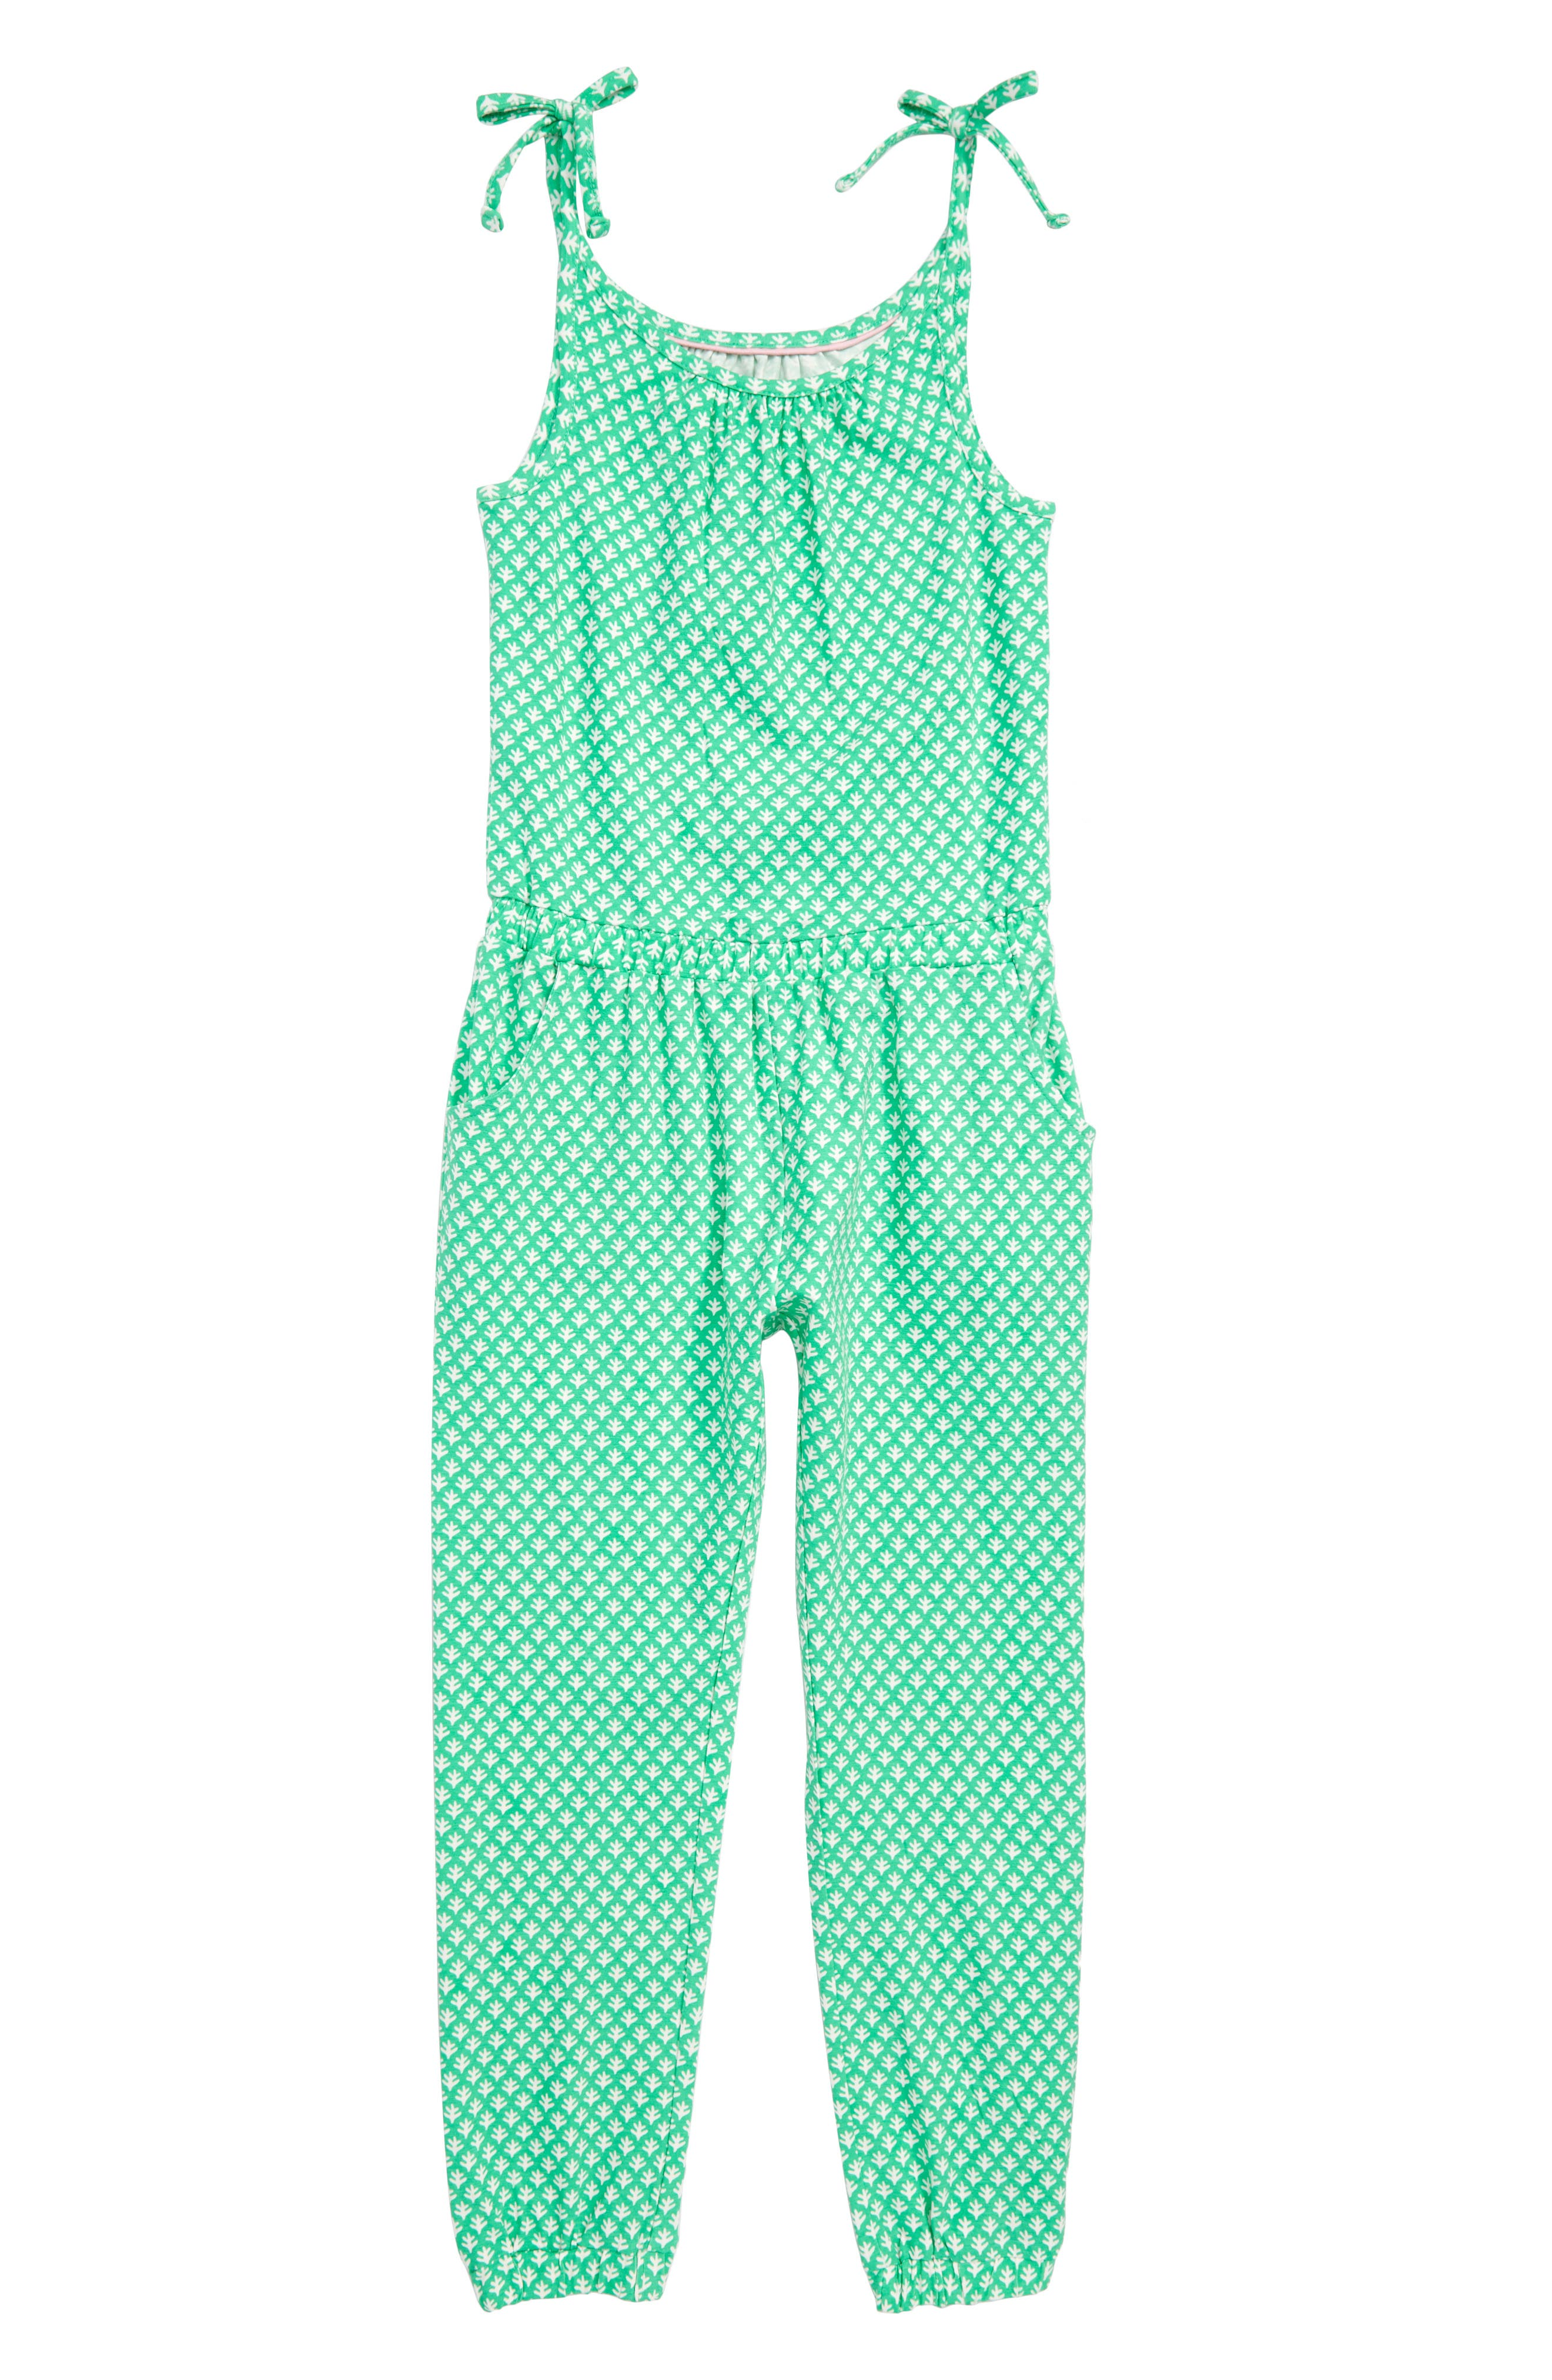 Jersey Jumpsuit,                         Main,                         color, Peppermint Cream/ Ivory Geo